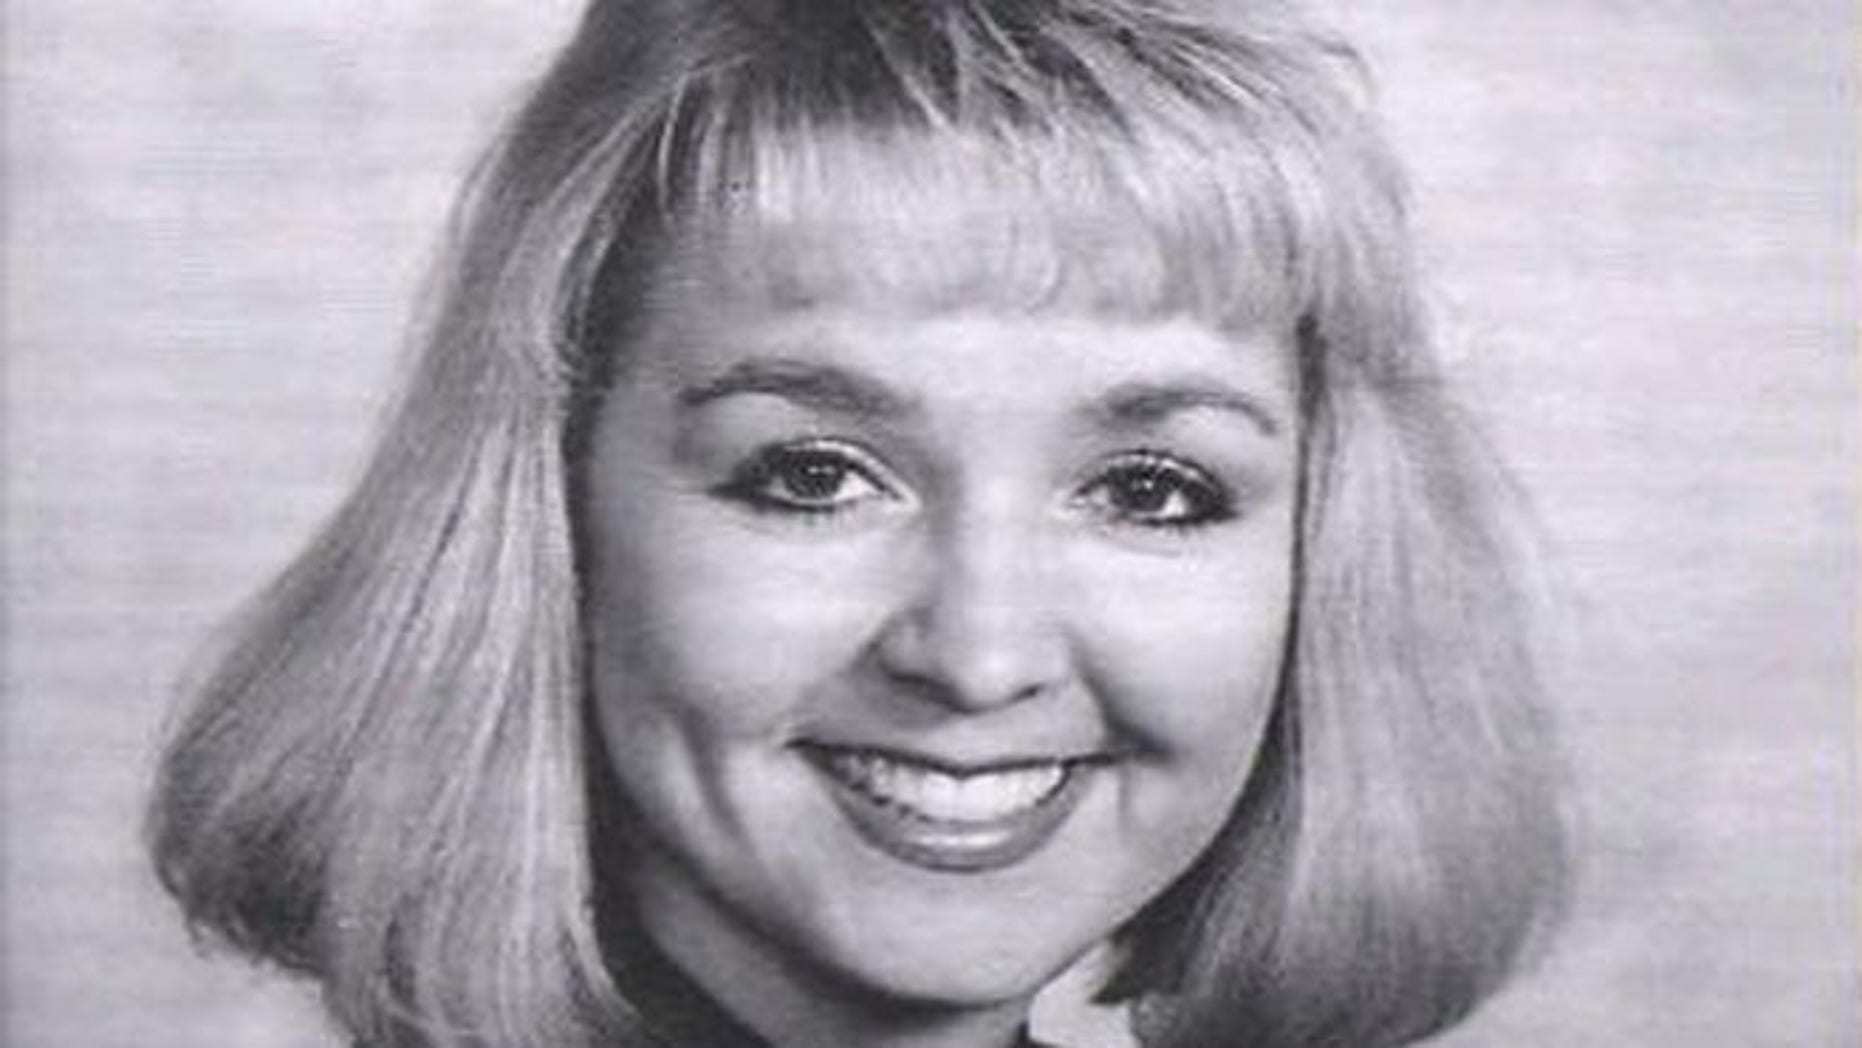 Iowa news anchor Jodi Huisentruit is seen in this undated image.